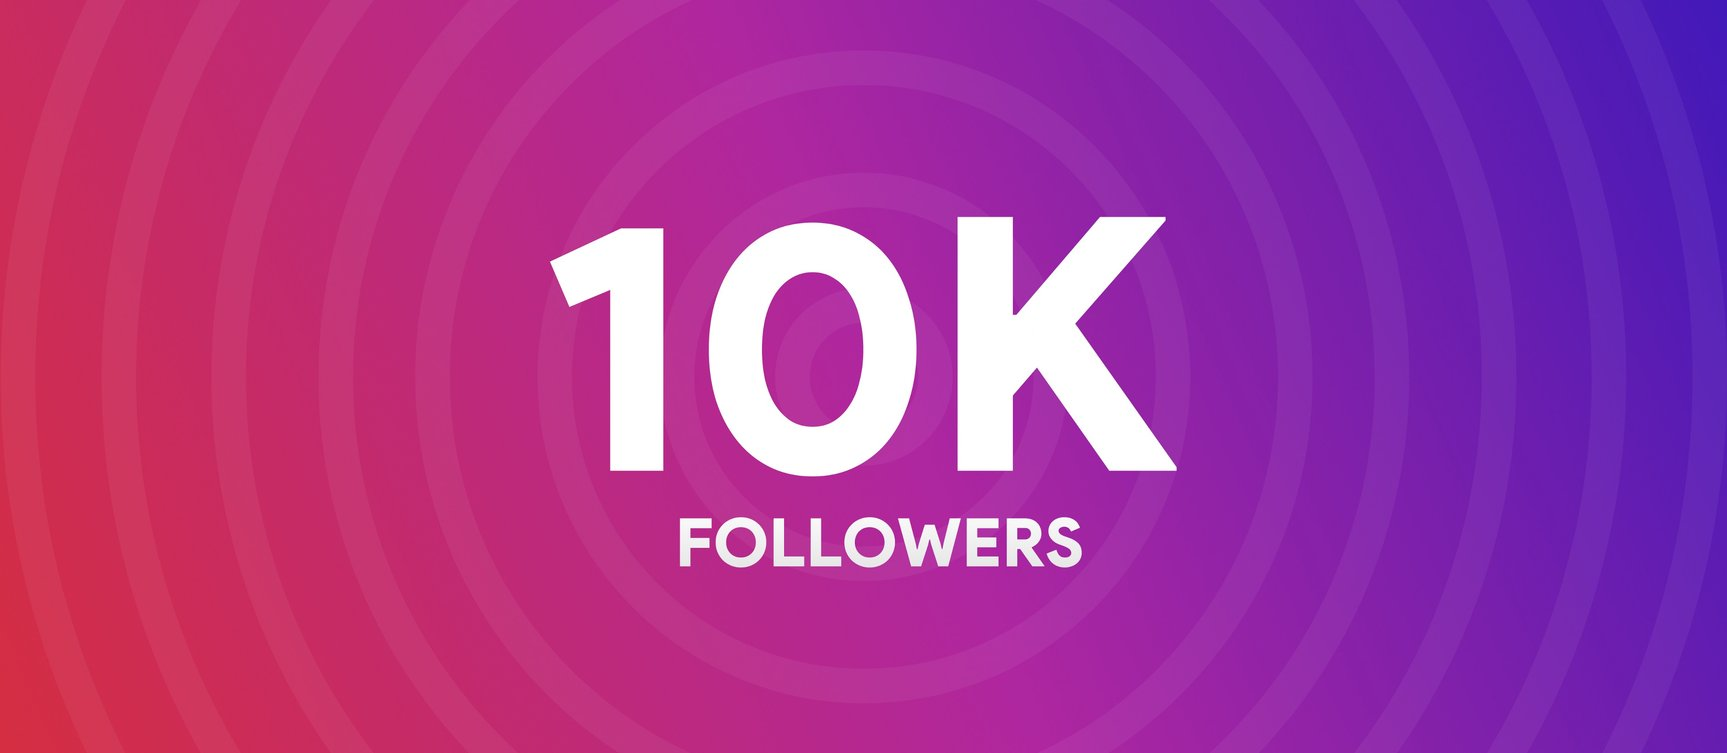 How to grow your instagram account to 10k followers